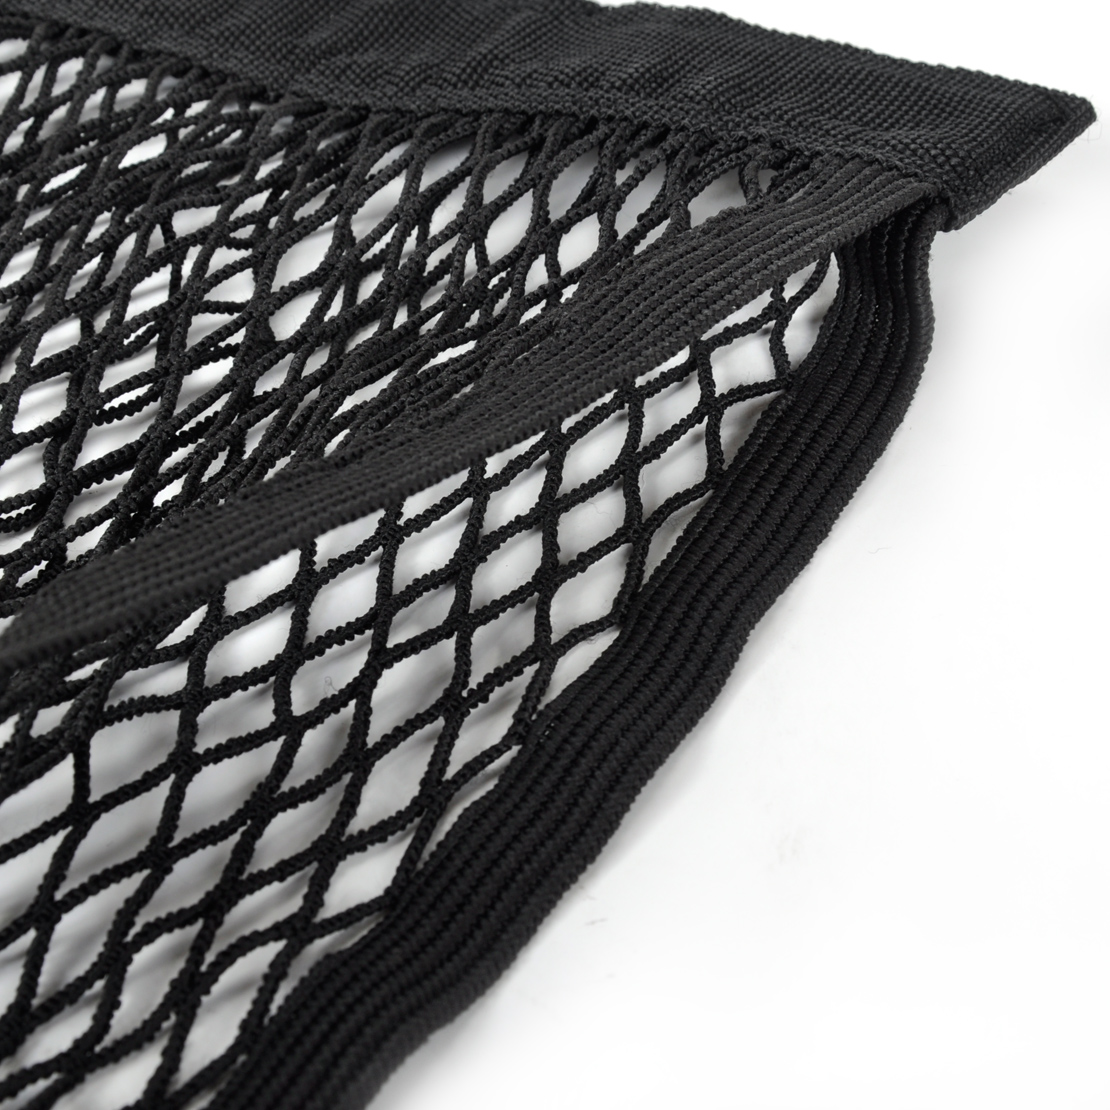 New Nylon Car Truck Cargo Mesh Net Storage Hanging Holder